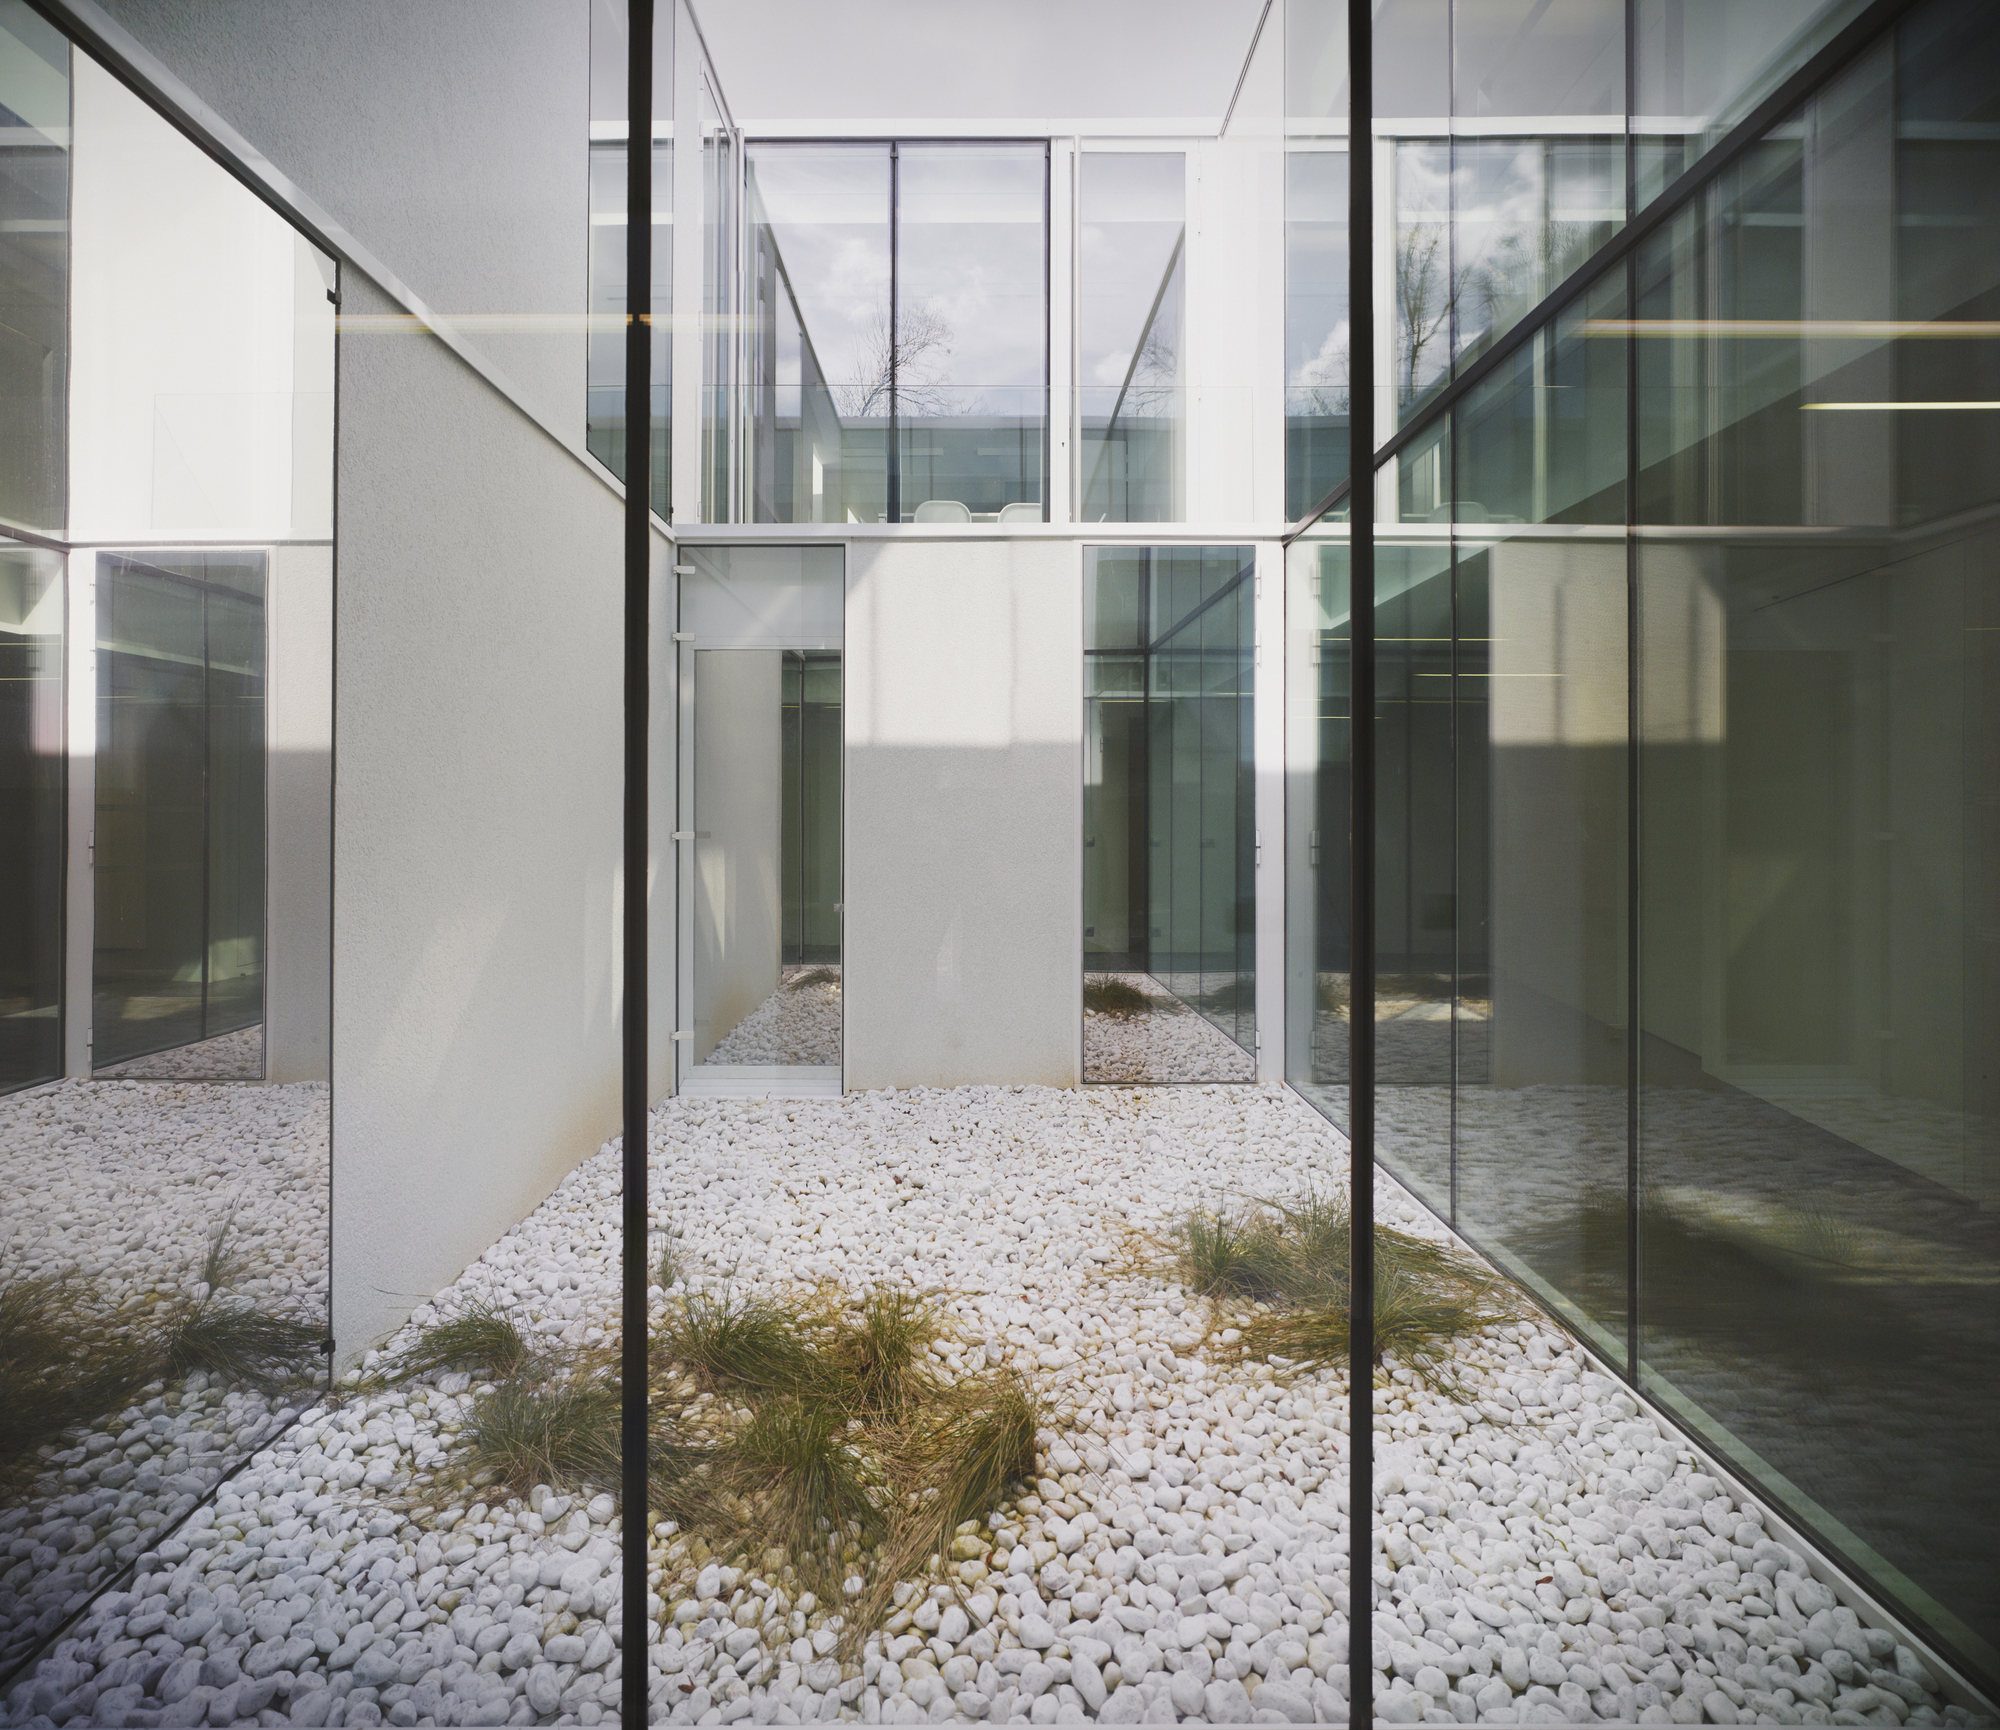 Architecte Bures Sur Yvette gallery of child psychiatry hospitalization building of 12